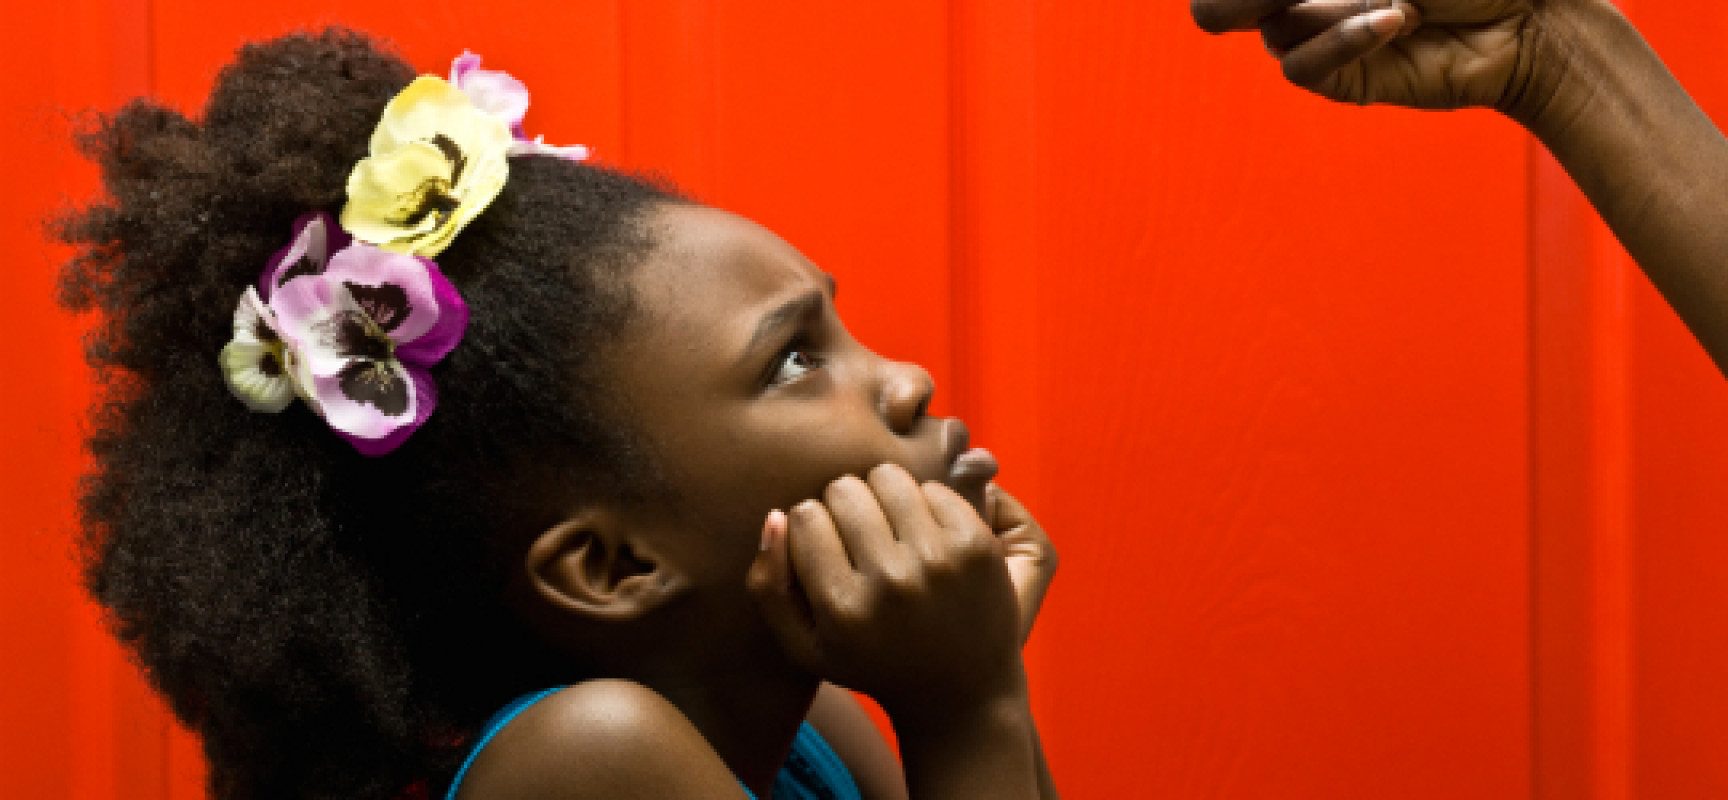 At what age do you start the practice of training your child(ren) to obey rules?